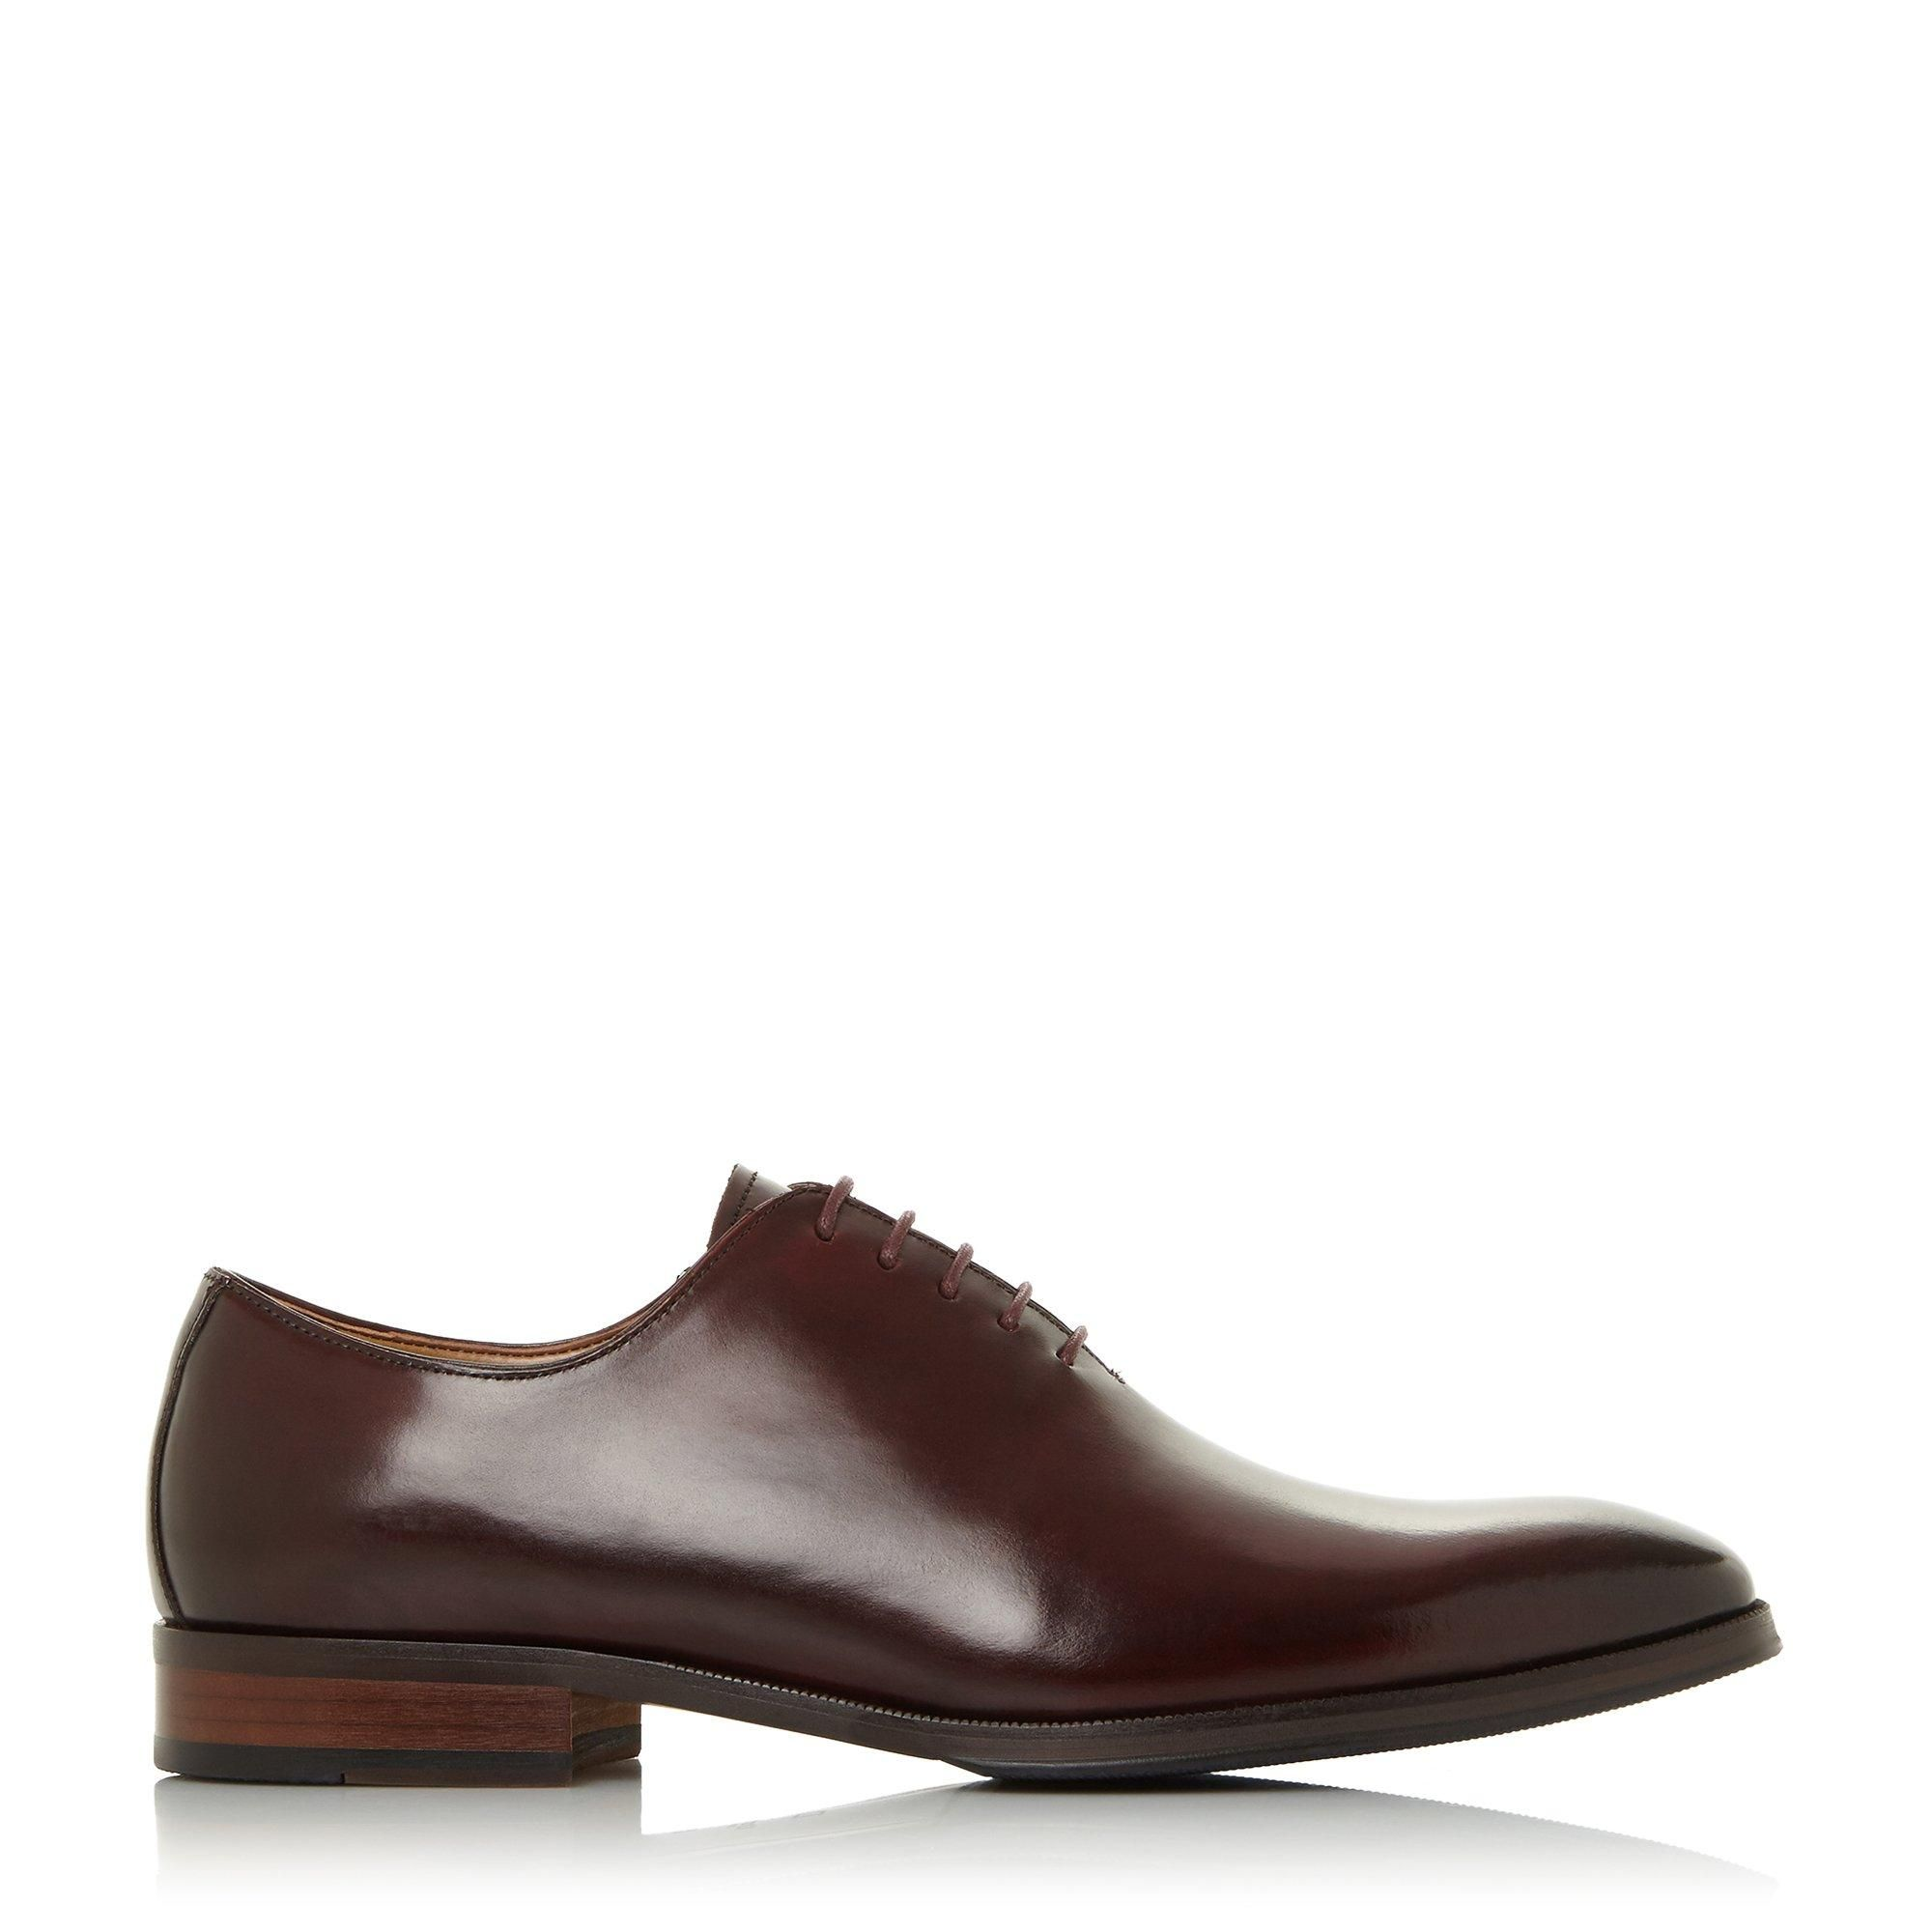 Dune Mens SOCIETY Lace Up Smart Oxford Shoes